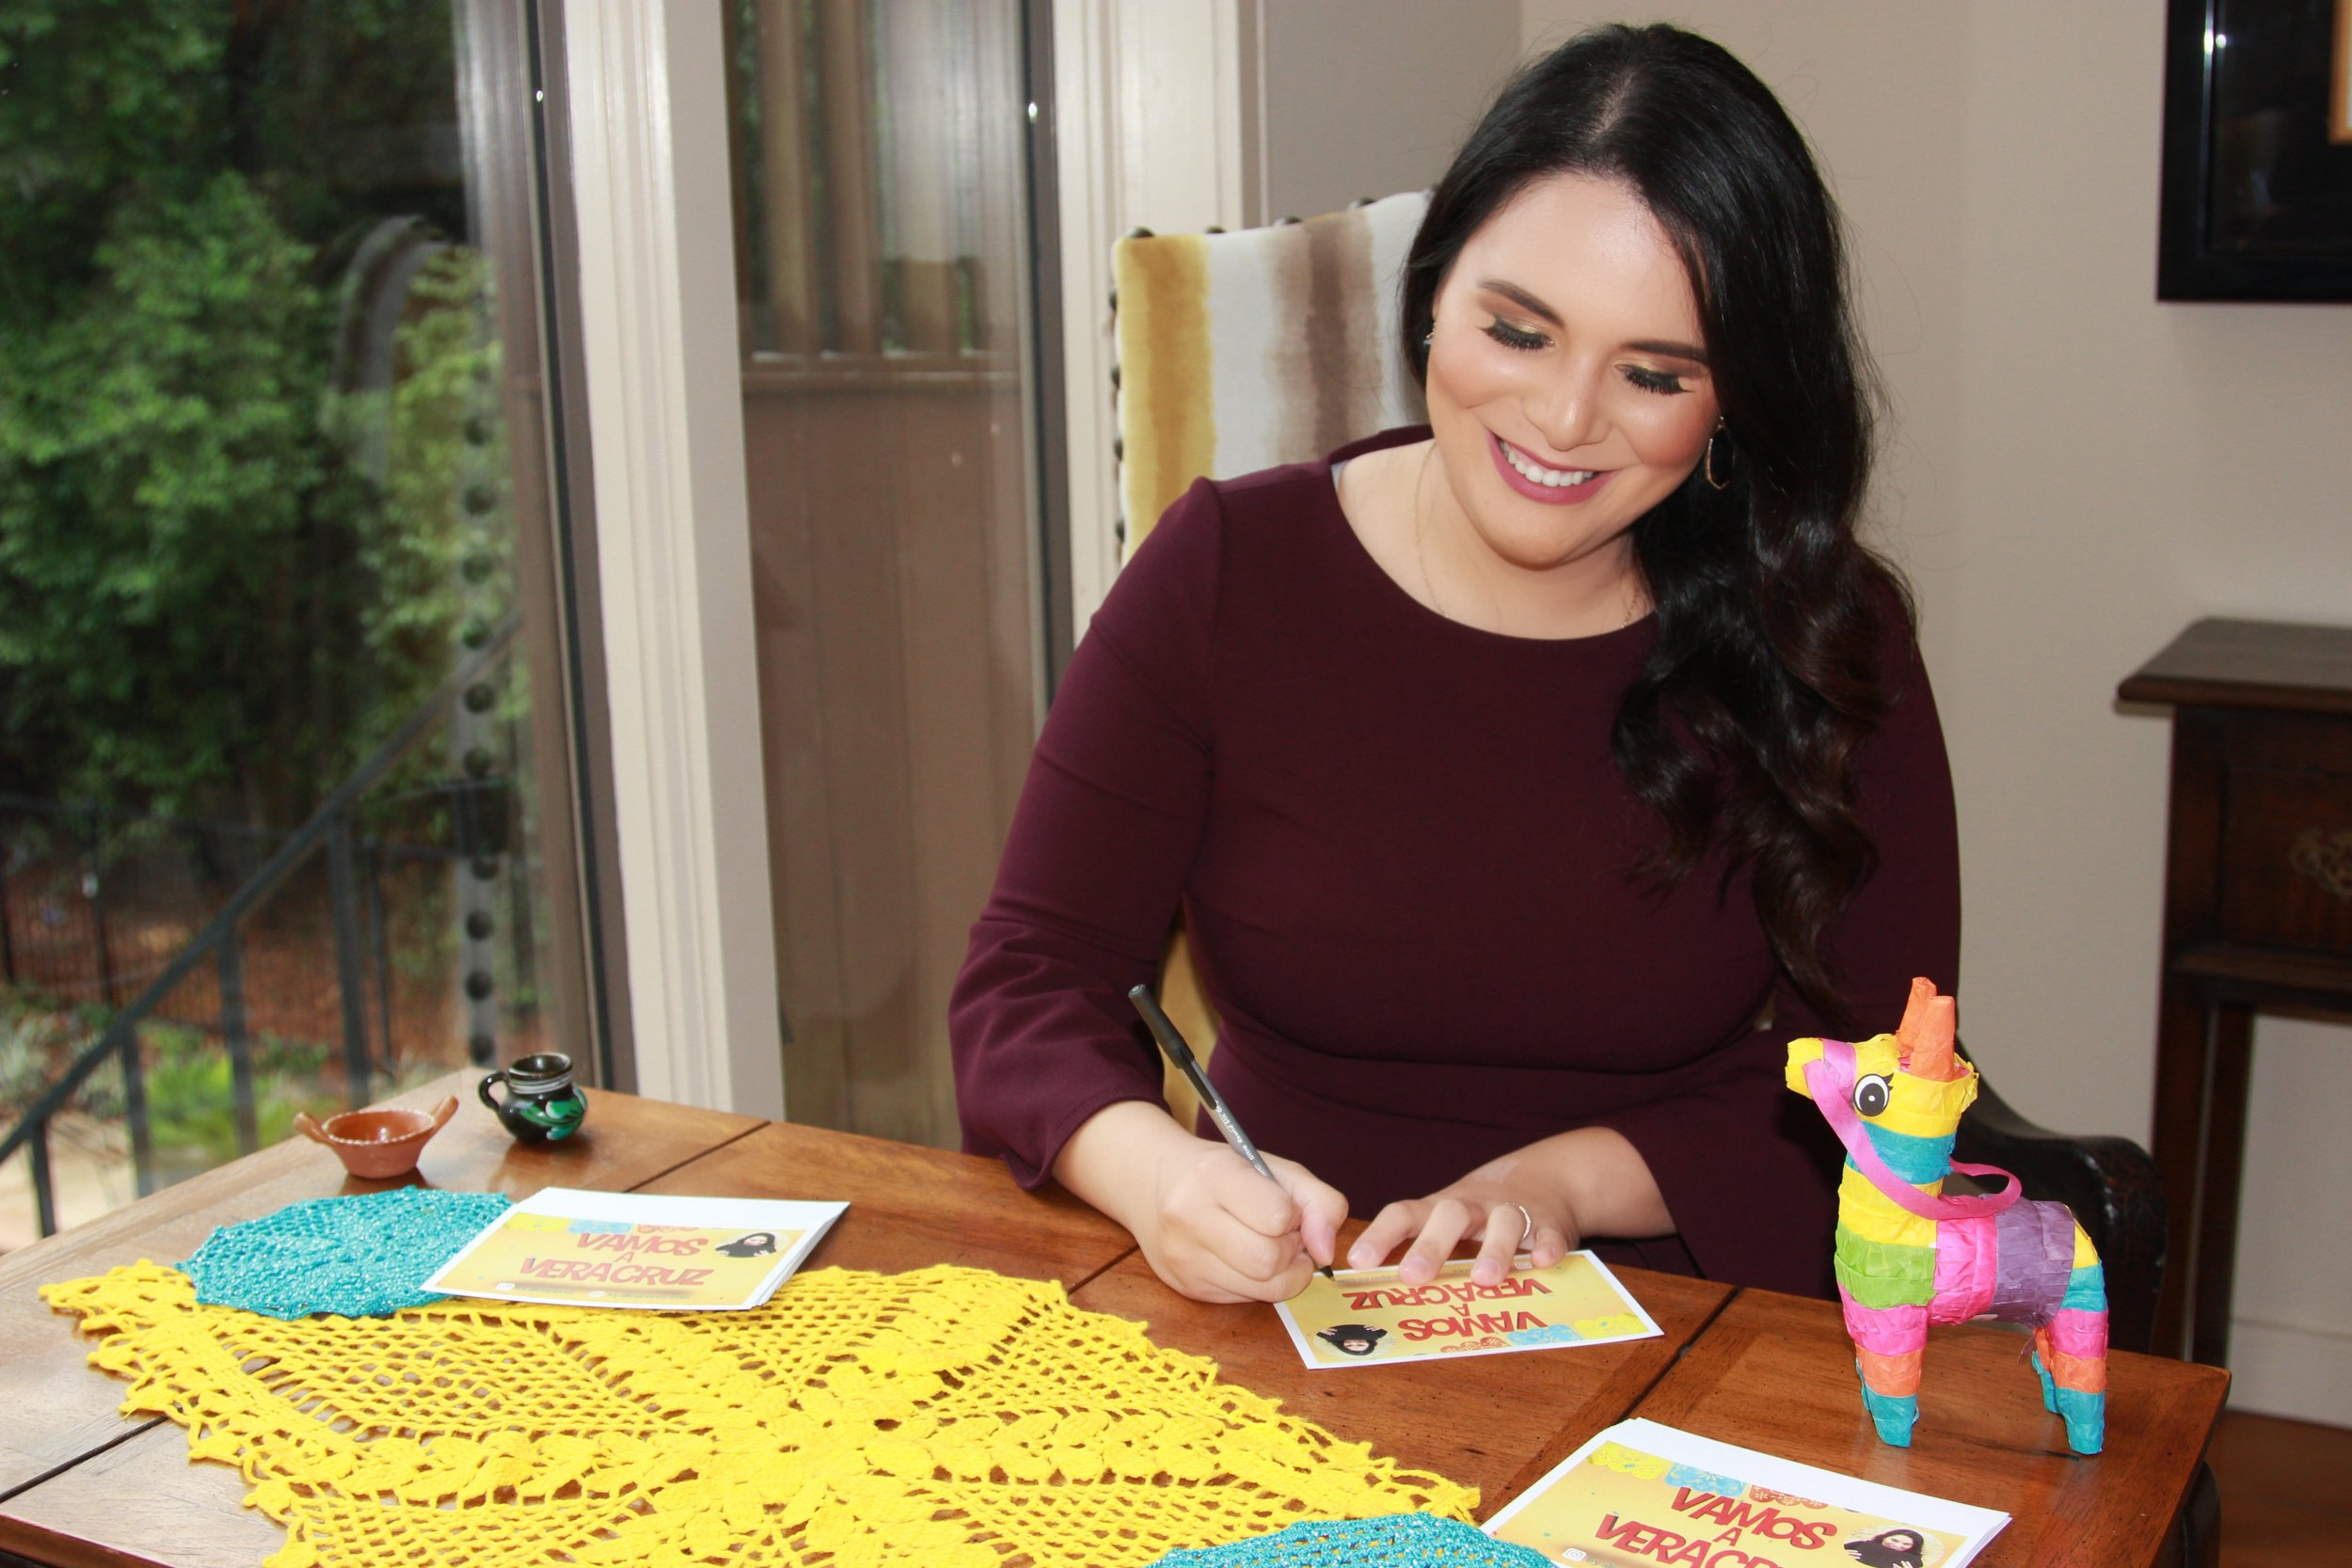 Author     Alice Perez   is adding her voice to children's literature with  Vamos a Veracruz , a book inspired by the experiences of her late grandmother.